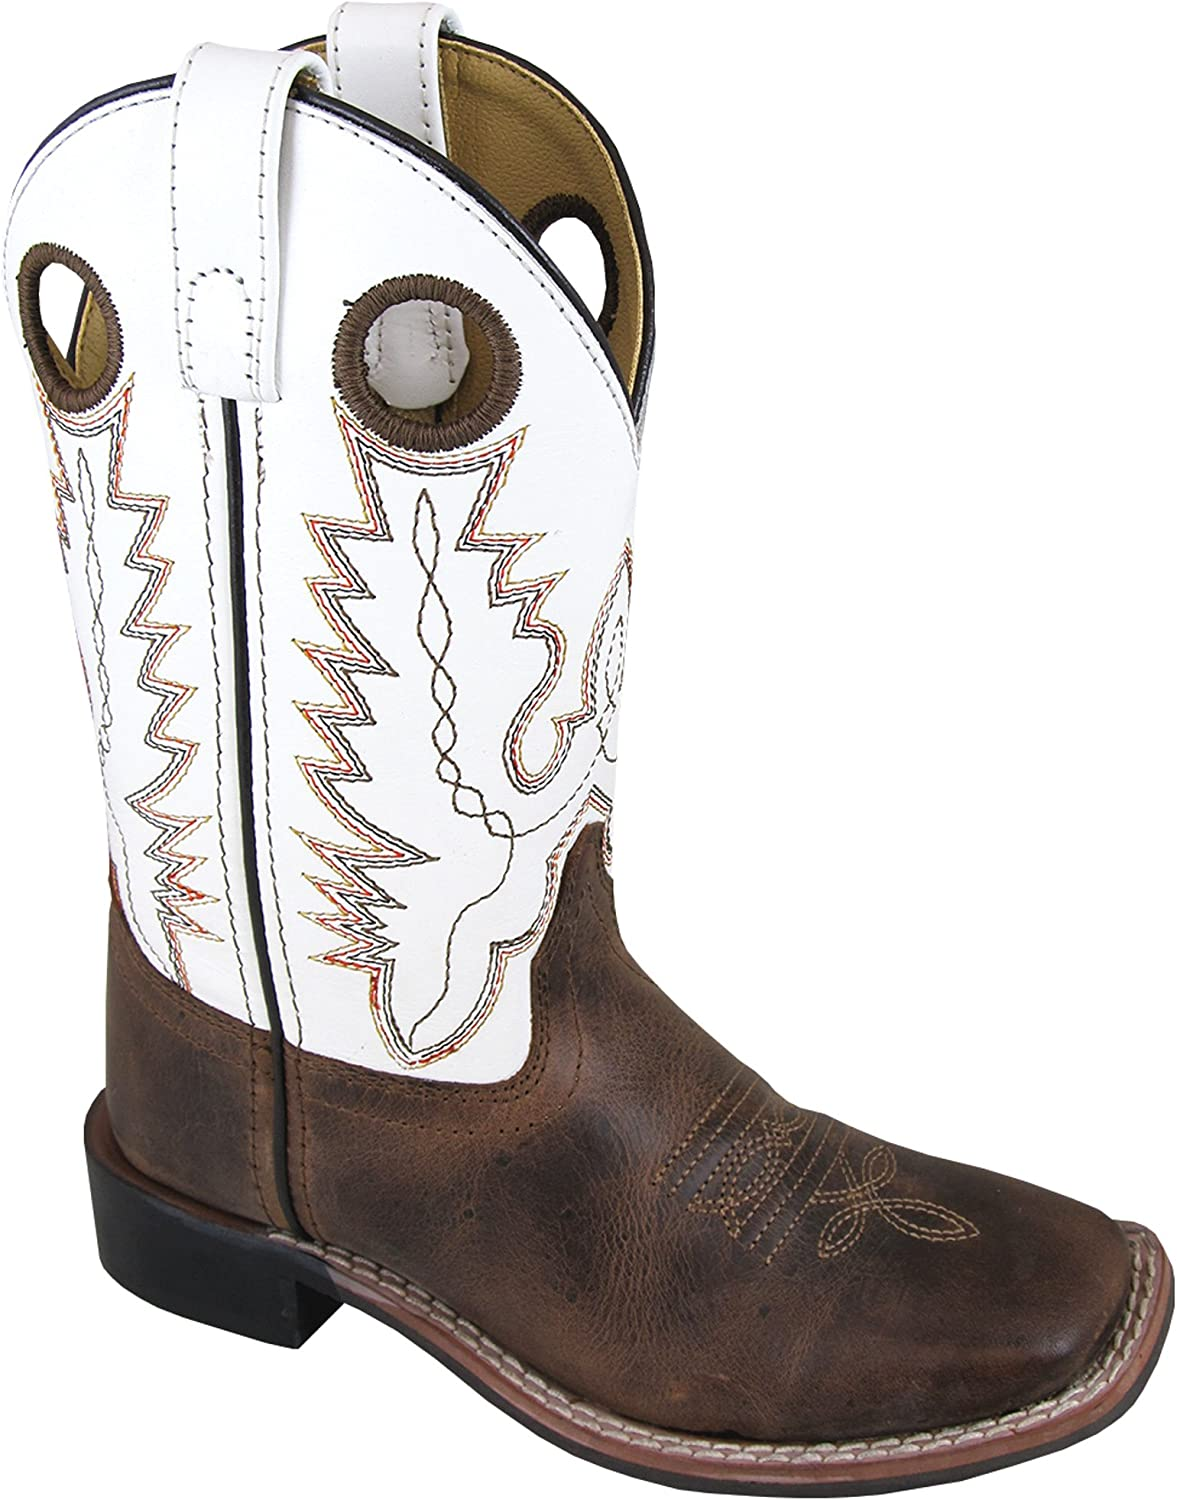 Brown Distress//Green Crackle 1 M US Smoky Mountain Boys Jesse Square Toe Western Cowboy Boot